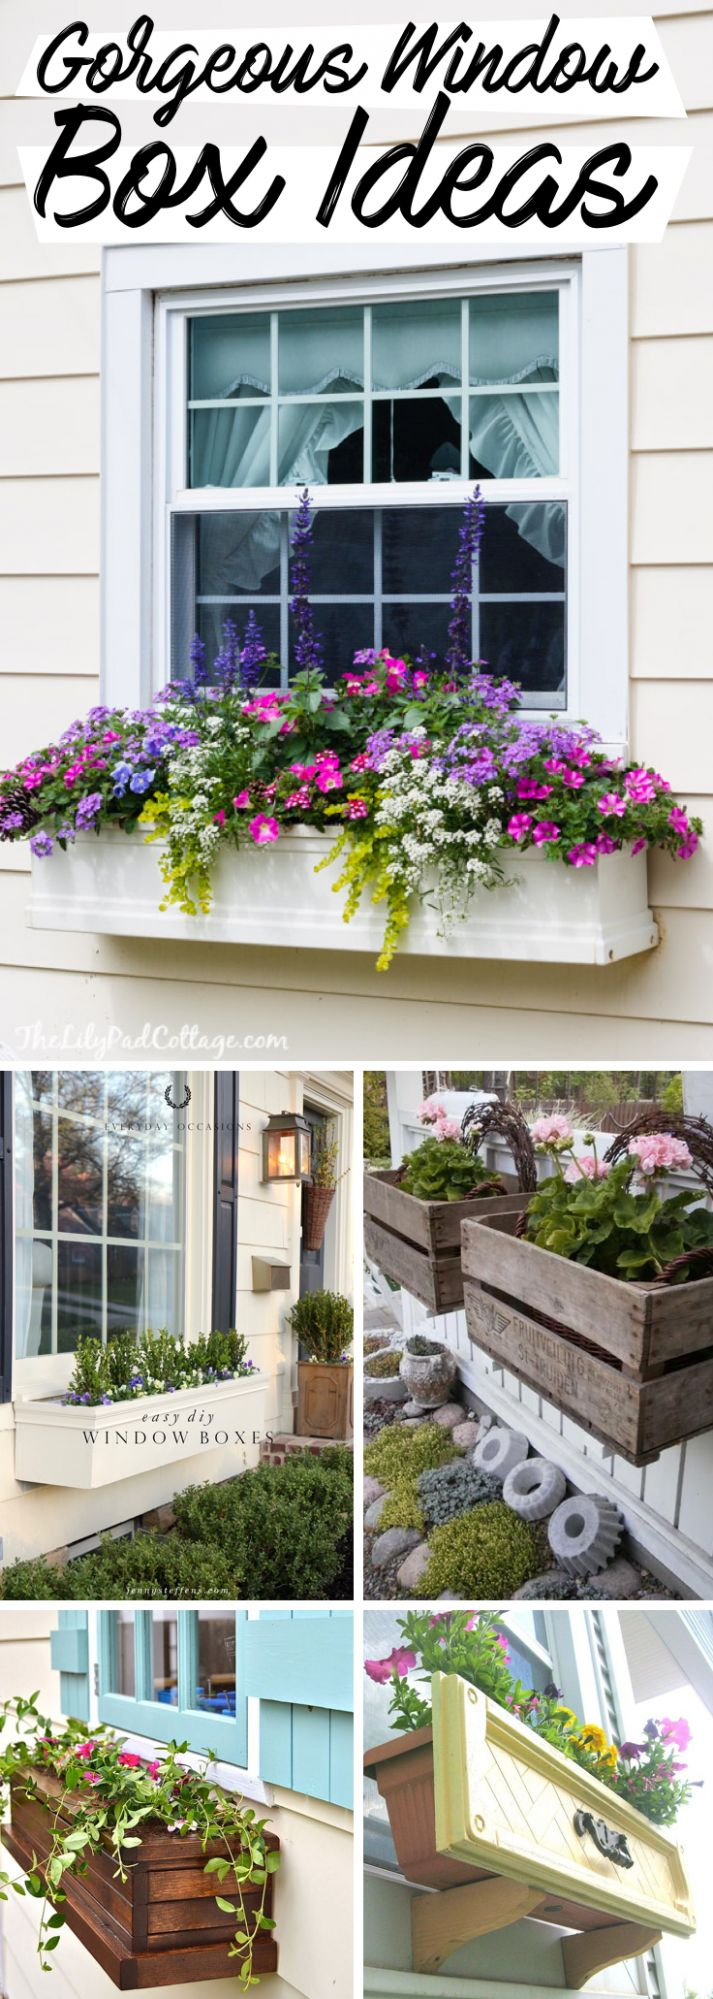 10 Gorgeous Window Box Ideas Adding Floral Magnificence To Your Home! - window box ideas